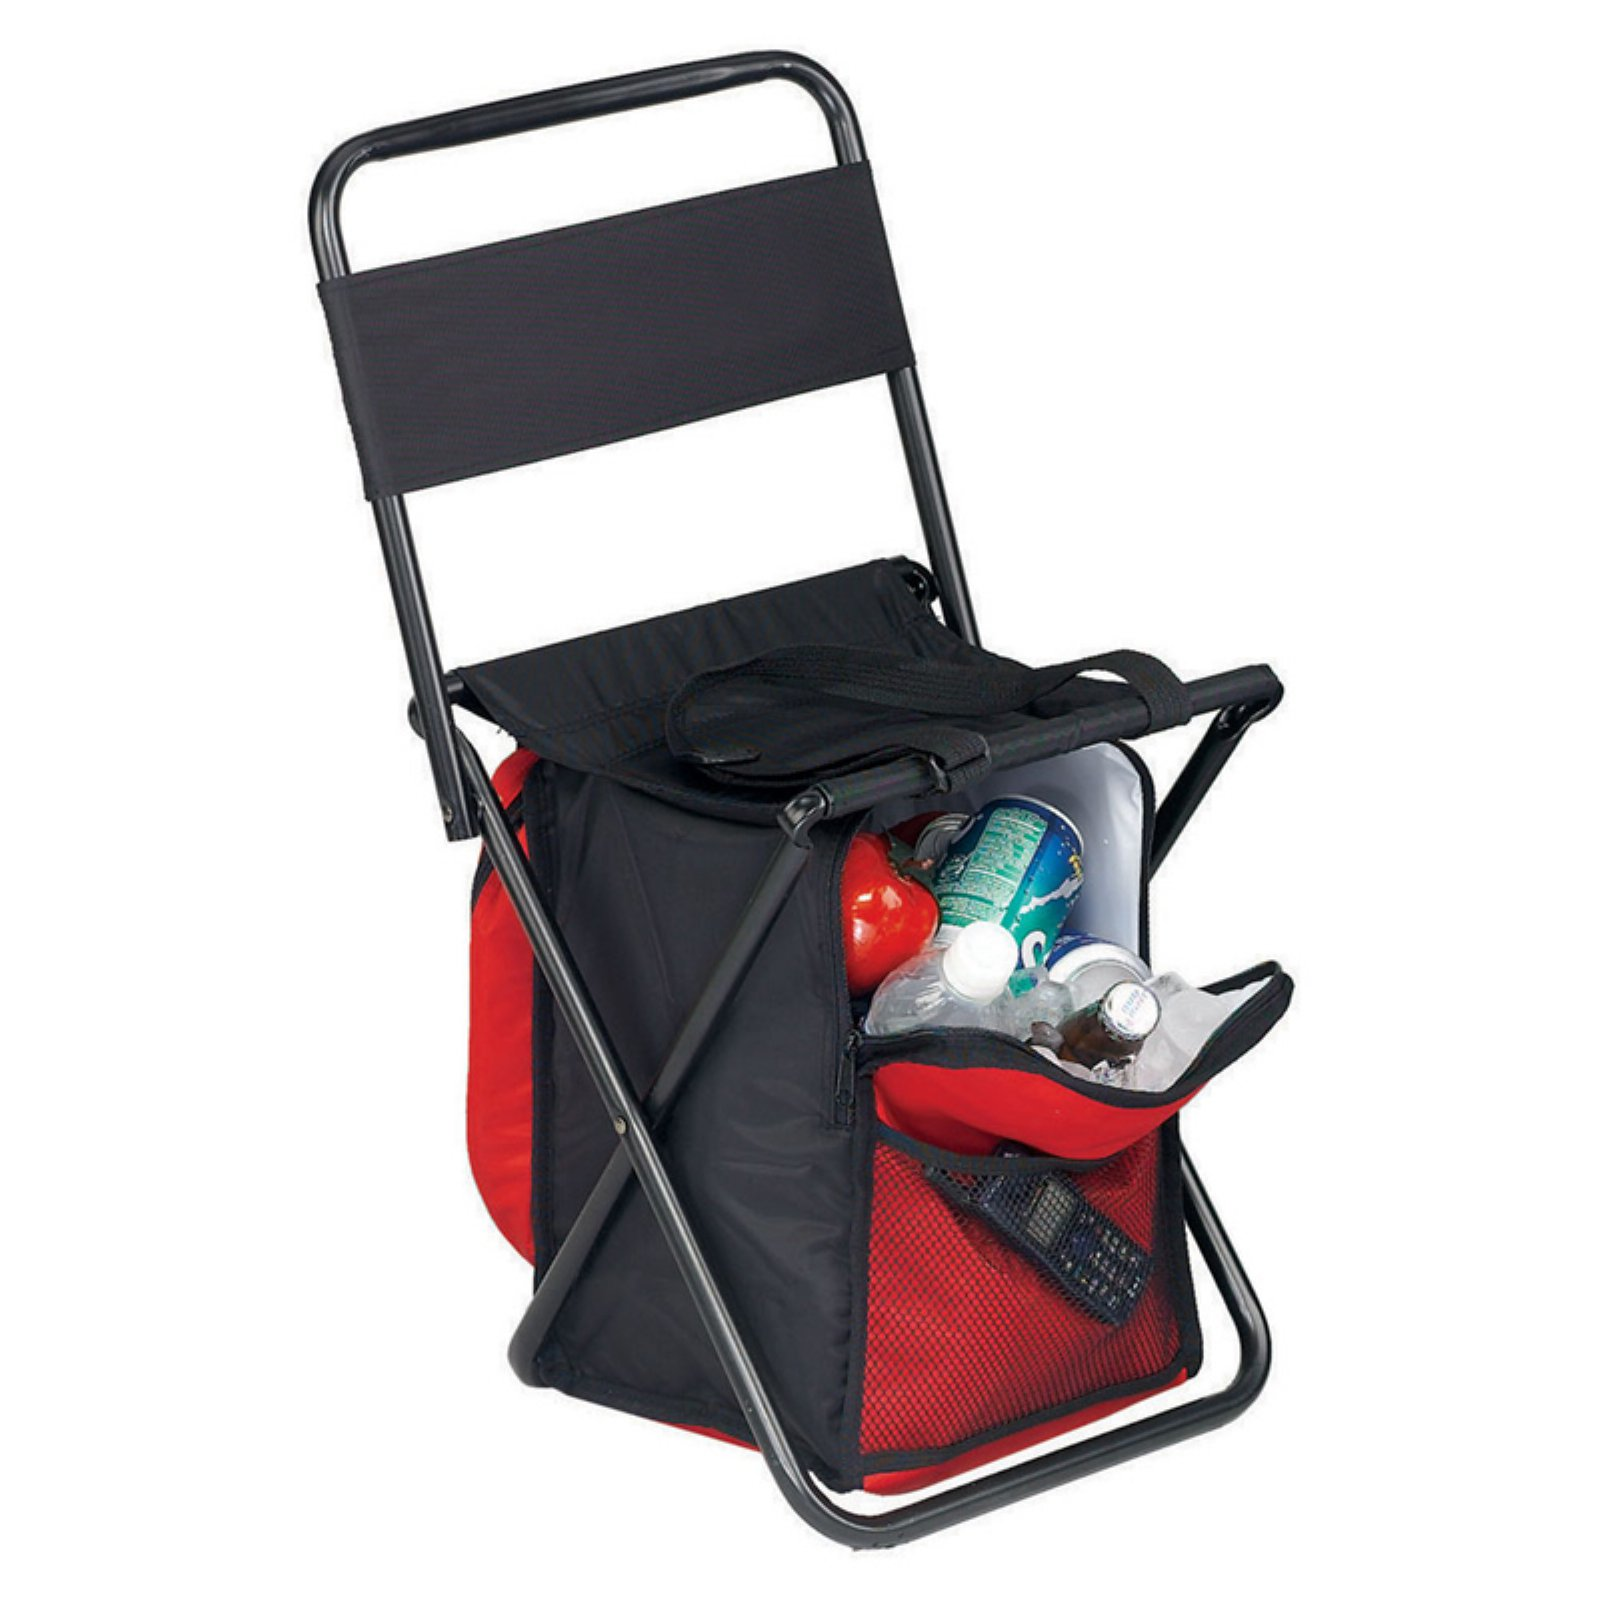 Preferred Nation Picnic Chair with Cooler Red/Black